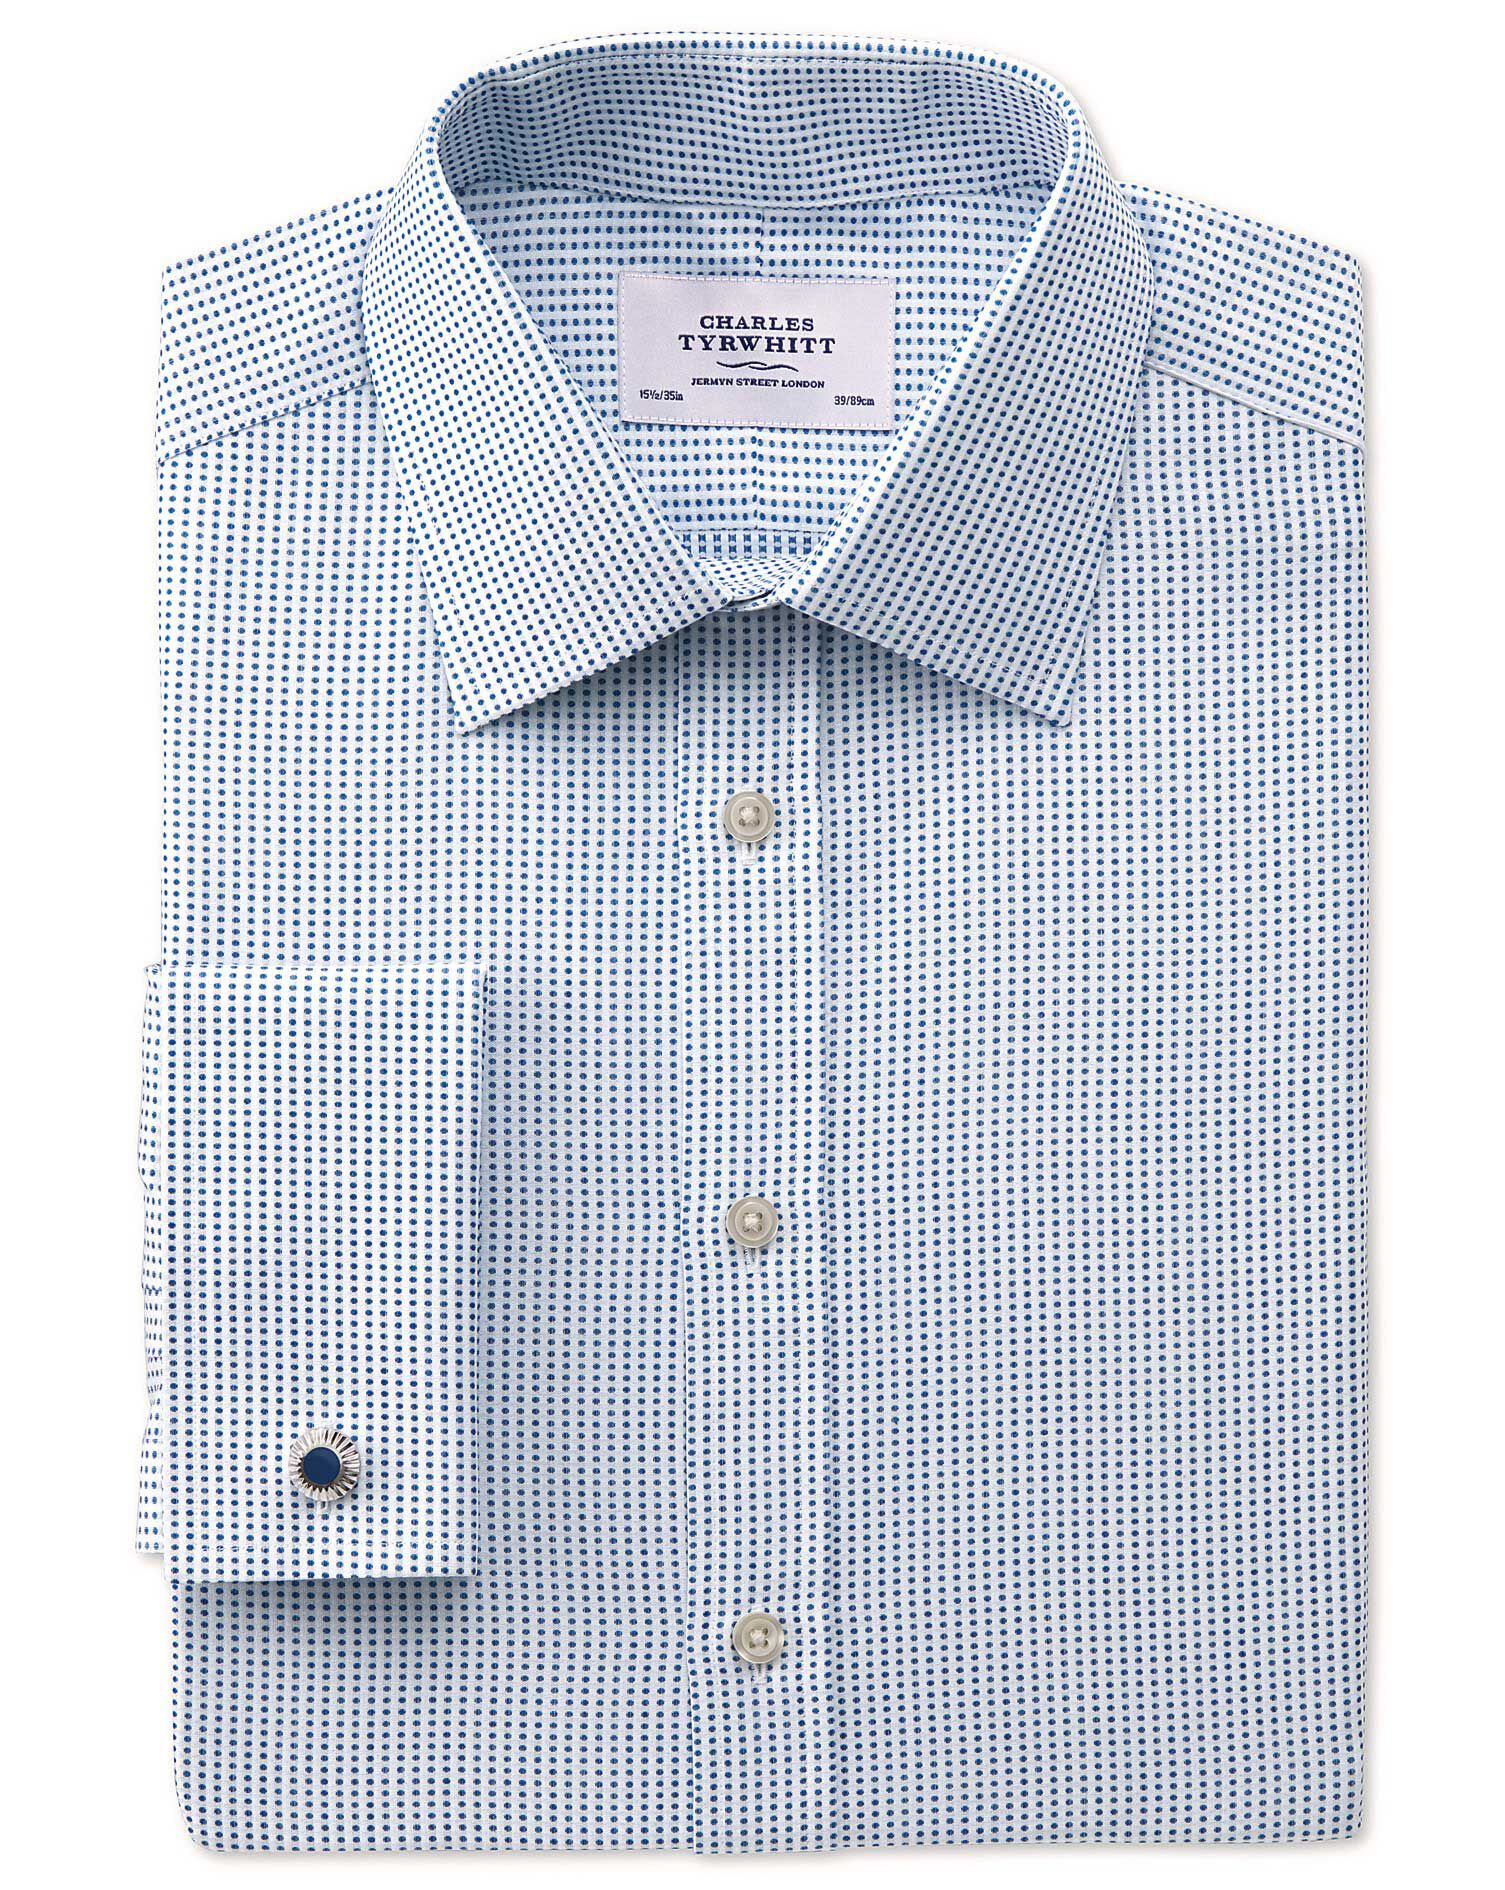 Extra Slim Fit Pima Cotton Double-Faced Navy Formal Shirt Double Cuff Size 15.5/35 by Charles Tyrwhi